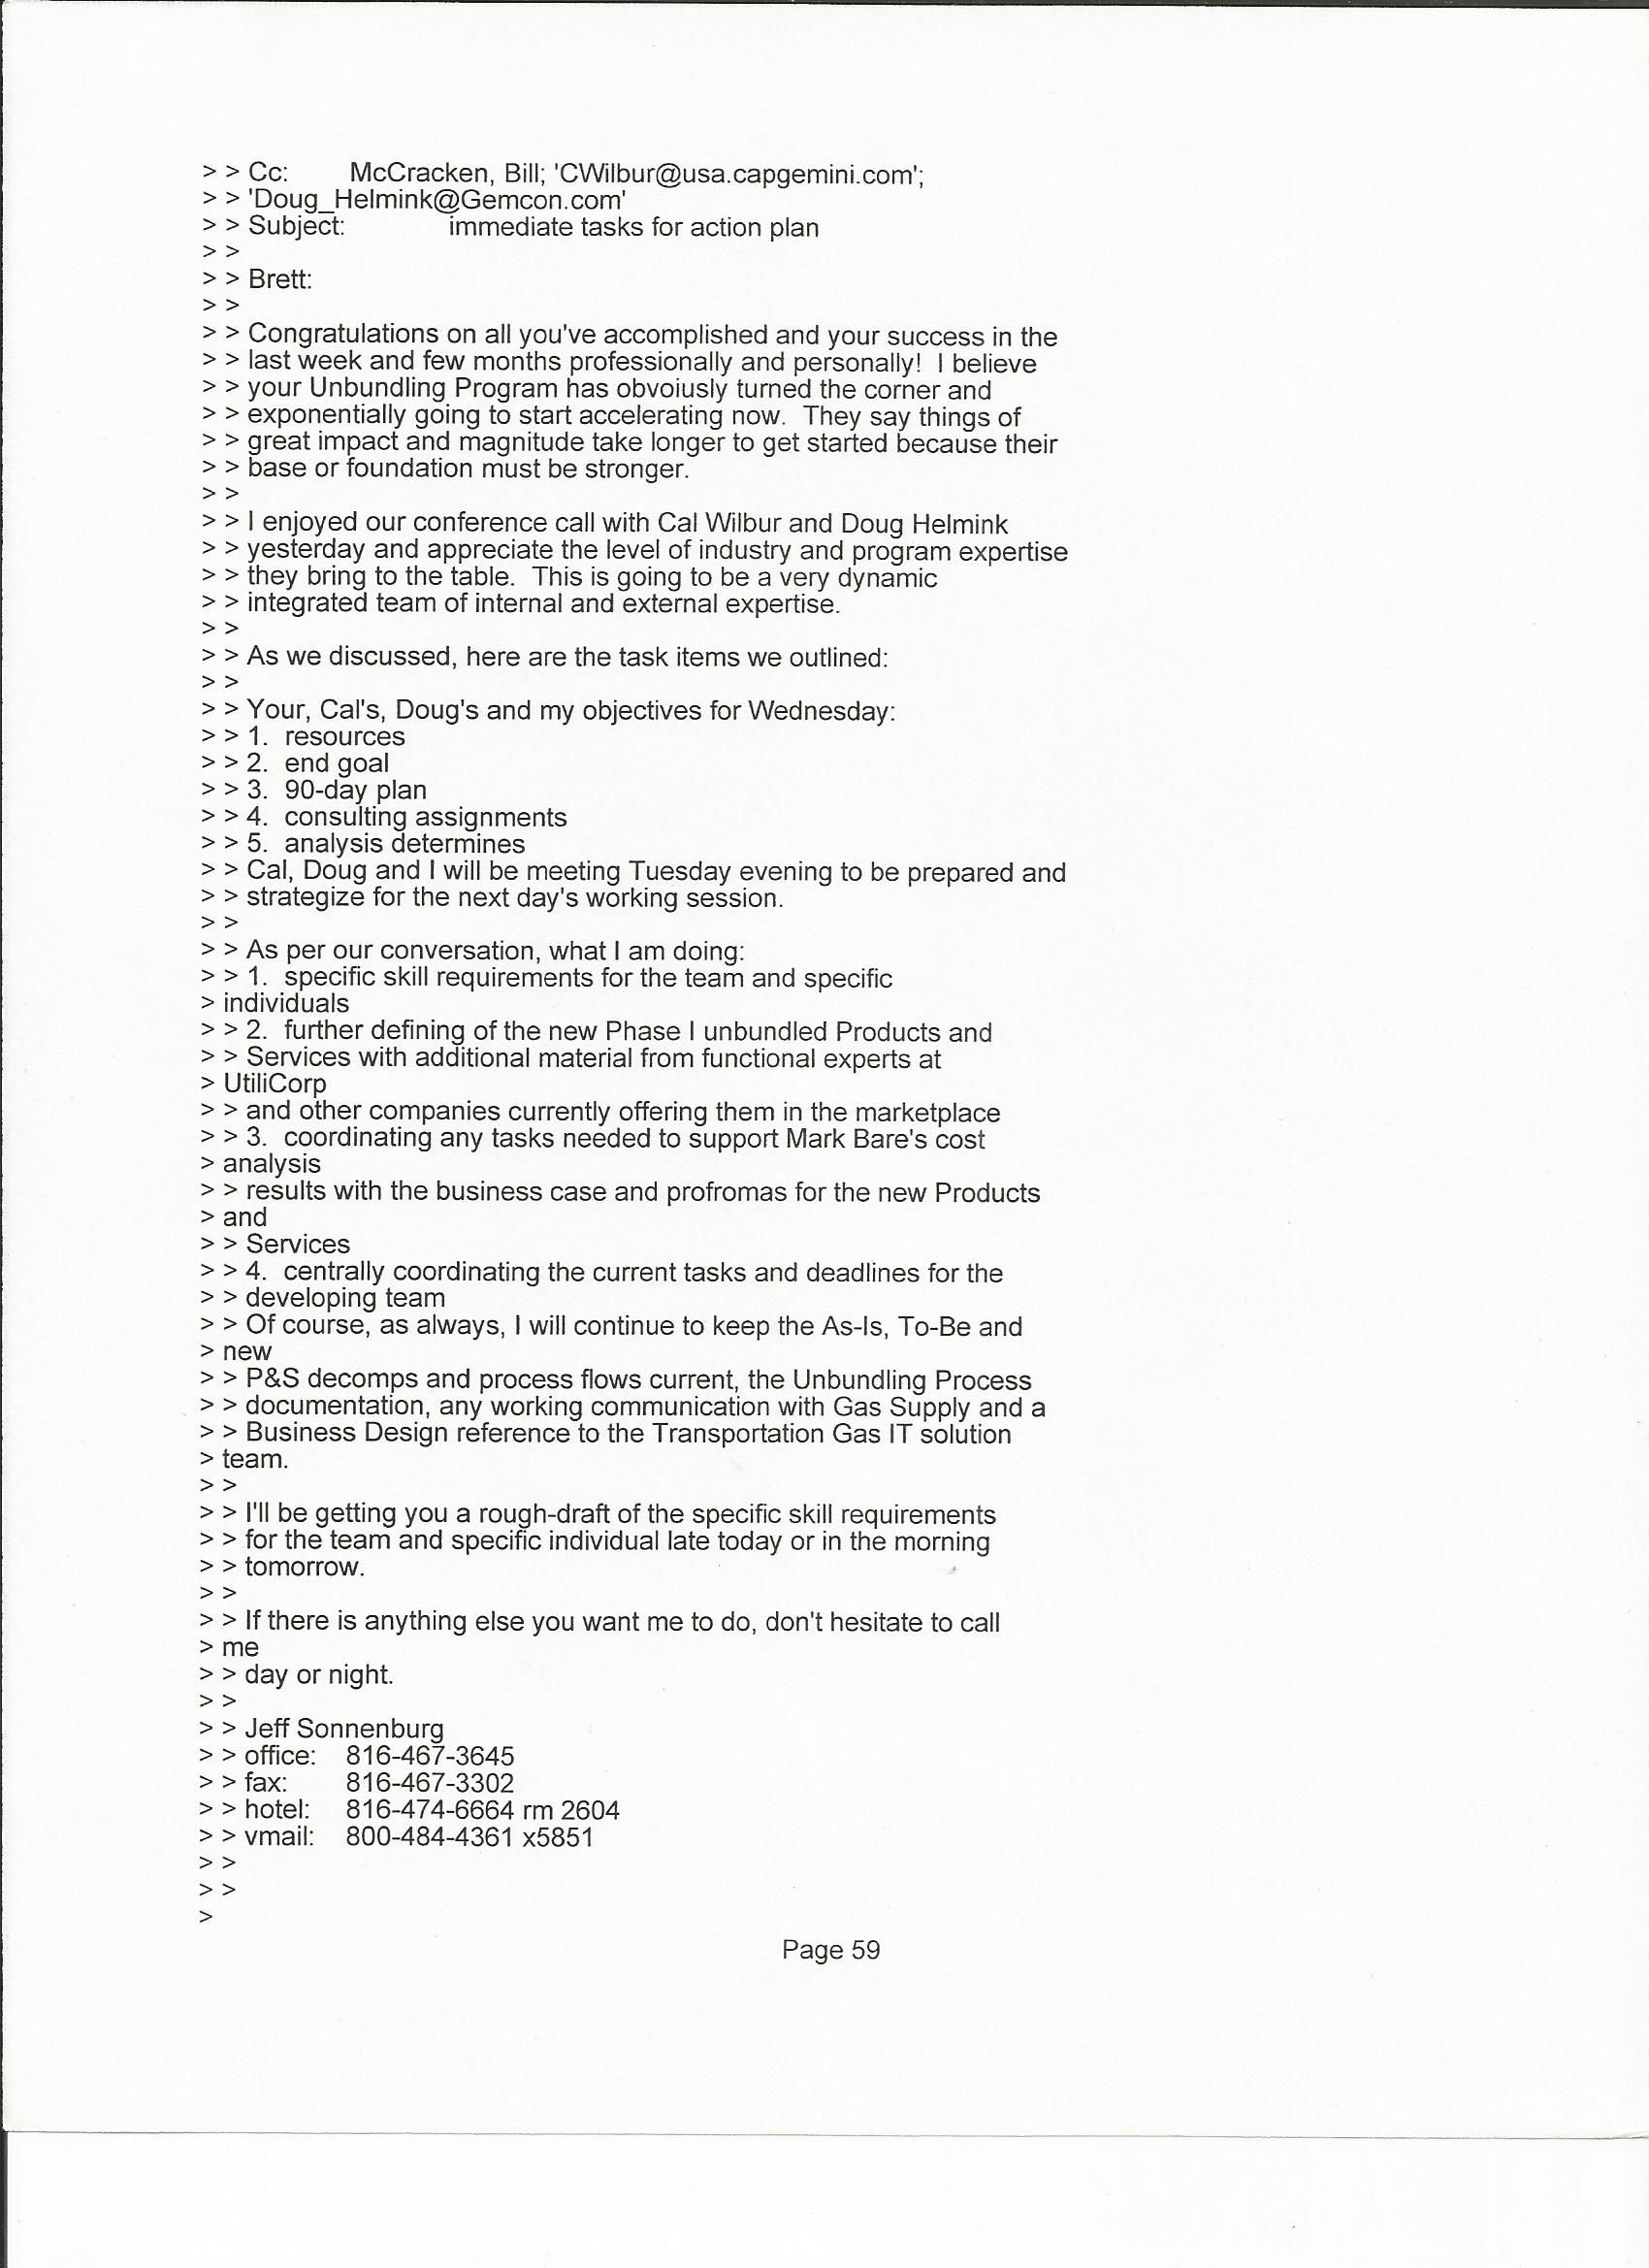 Jeff Sonnenburg results letter of reference from Cap Gemini